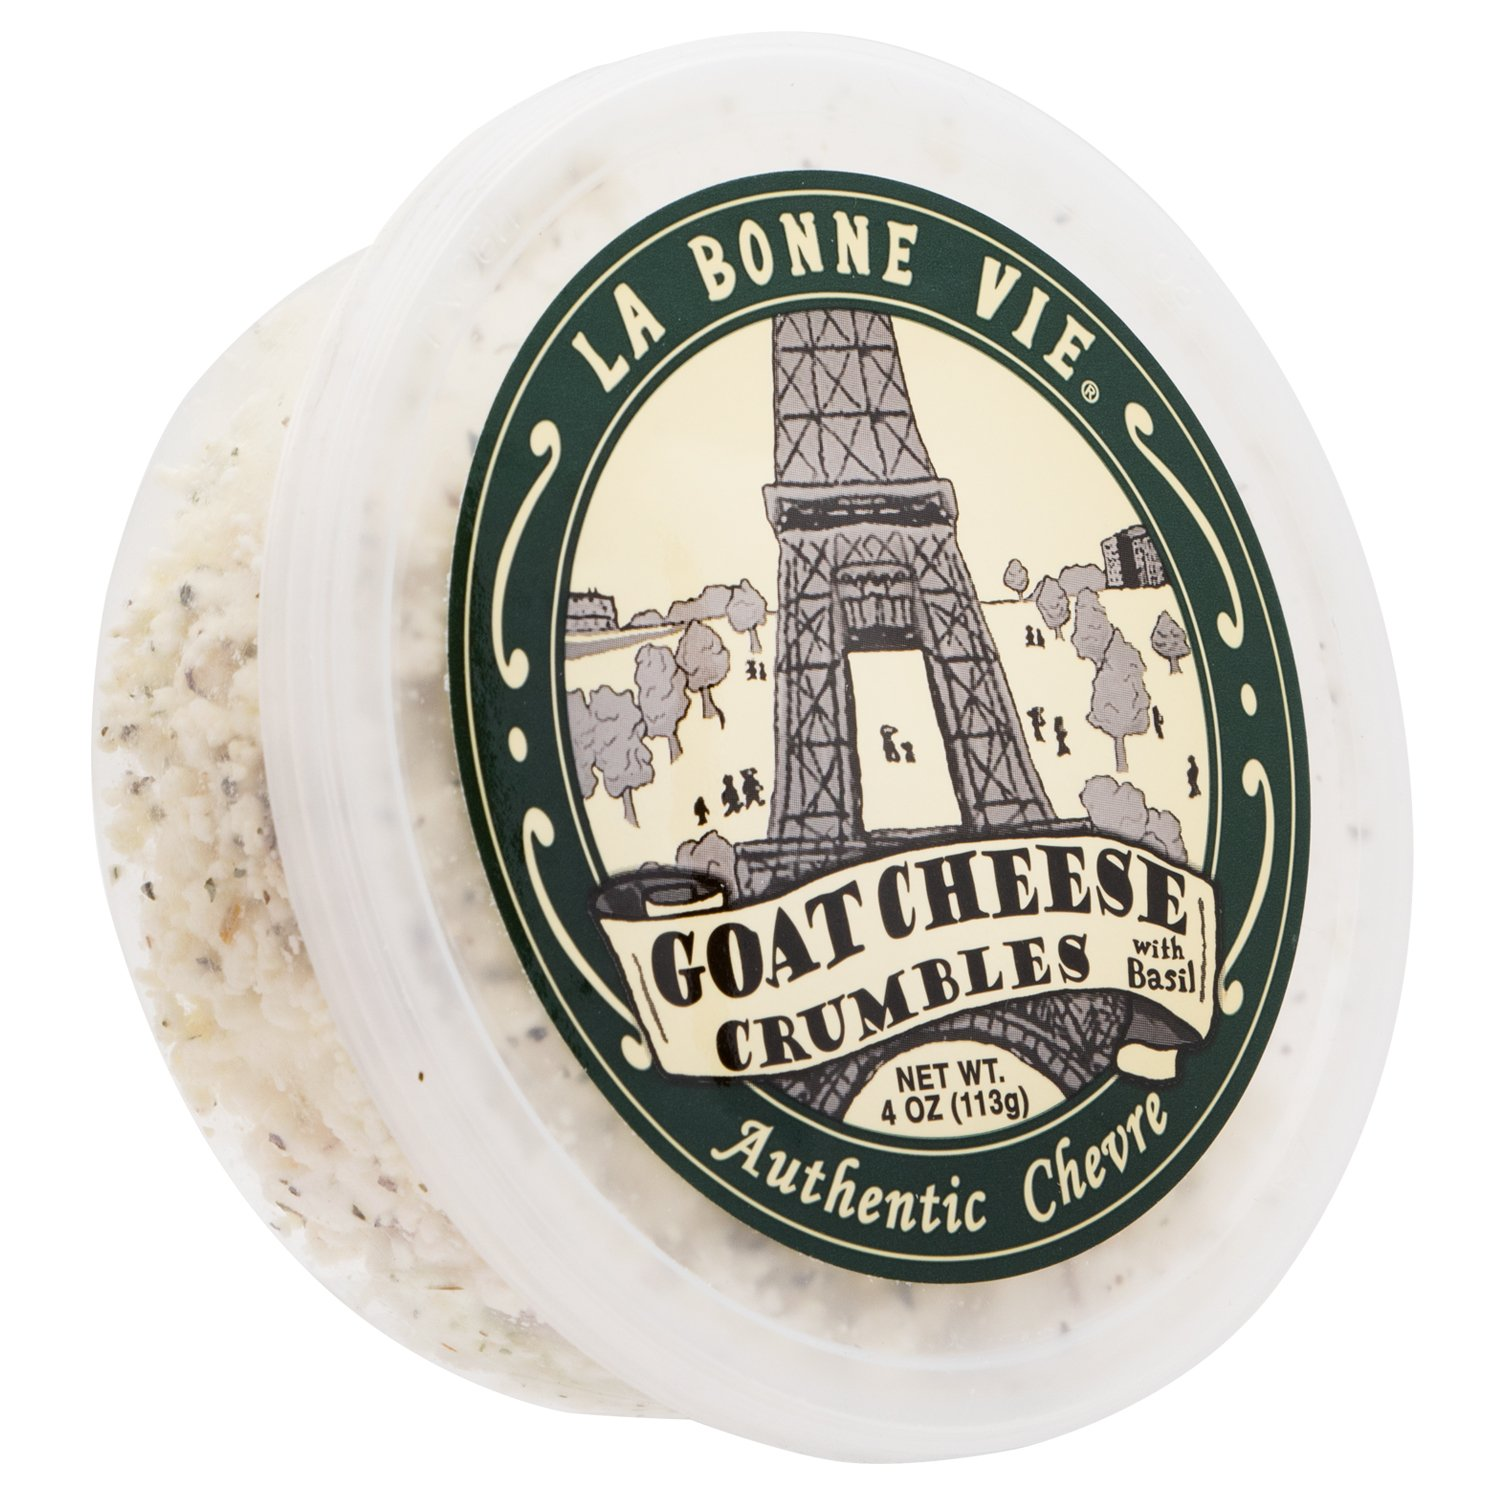 La Bonne Vie Crumbled Goat Cheese with Onion and Basil, 4 oz